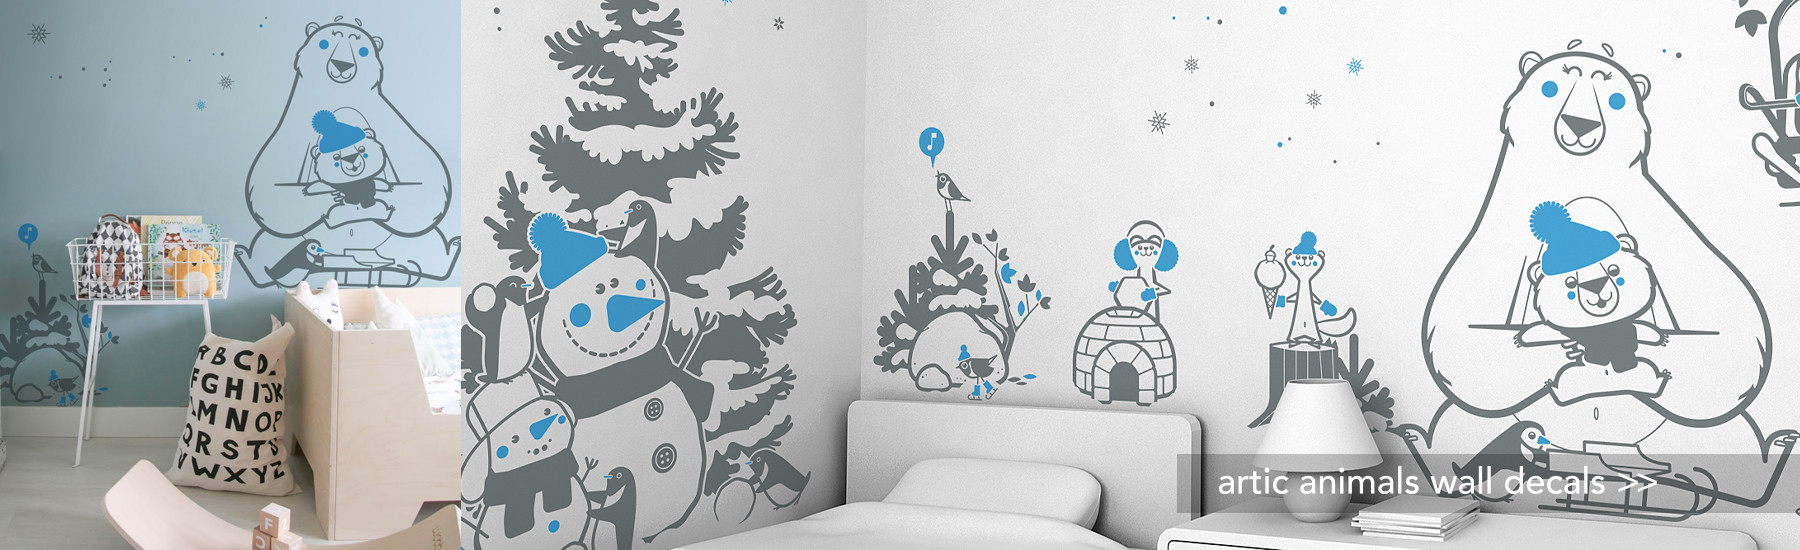 ARCTIC ANIMALS WALL DECALS FOR KIDS ROOM